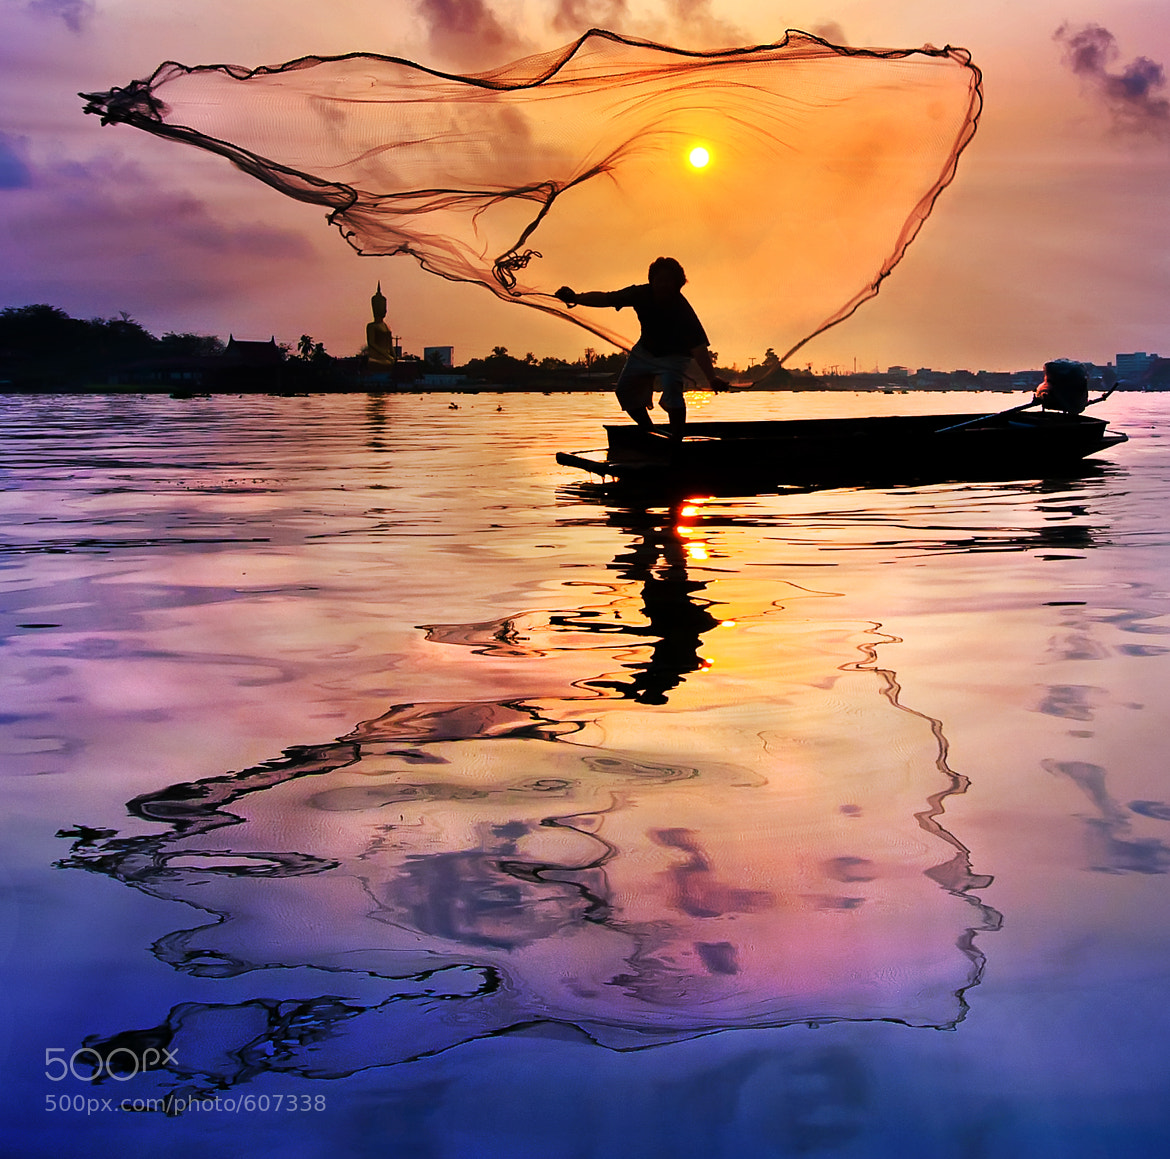 Photograph The Fisherman @ Thailand by Arthit Somsakul on 500px